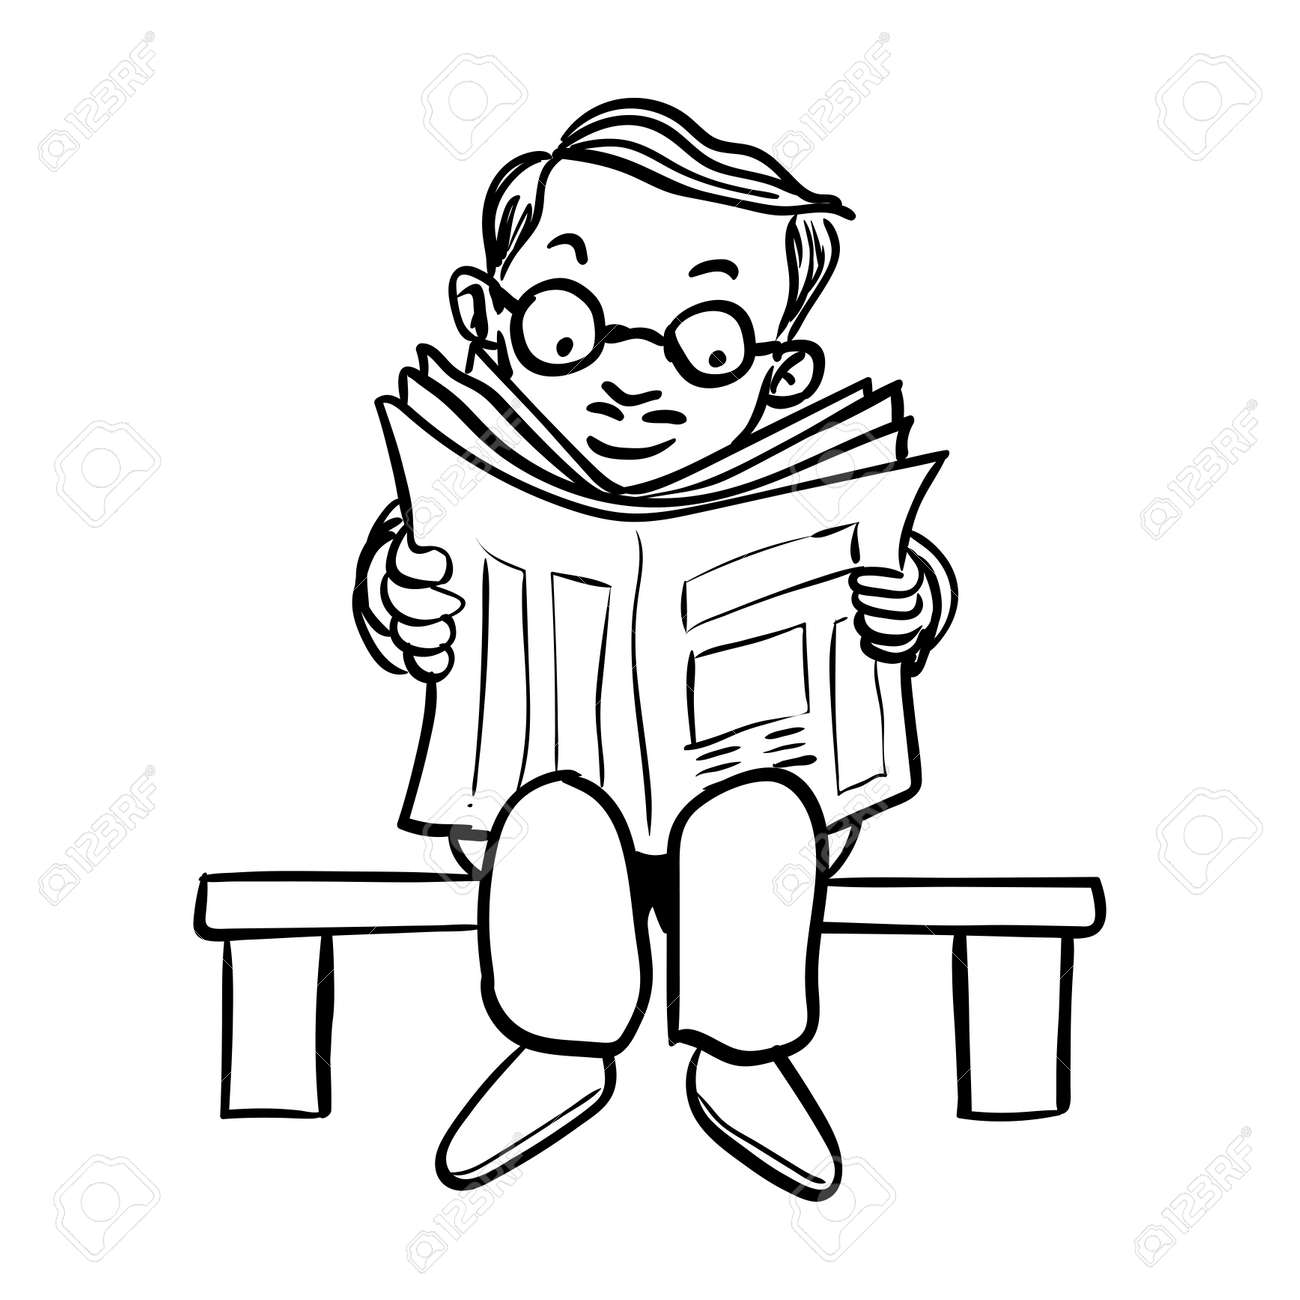 hand drawing of cartoon man wear glasses read news paper on bench